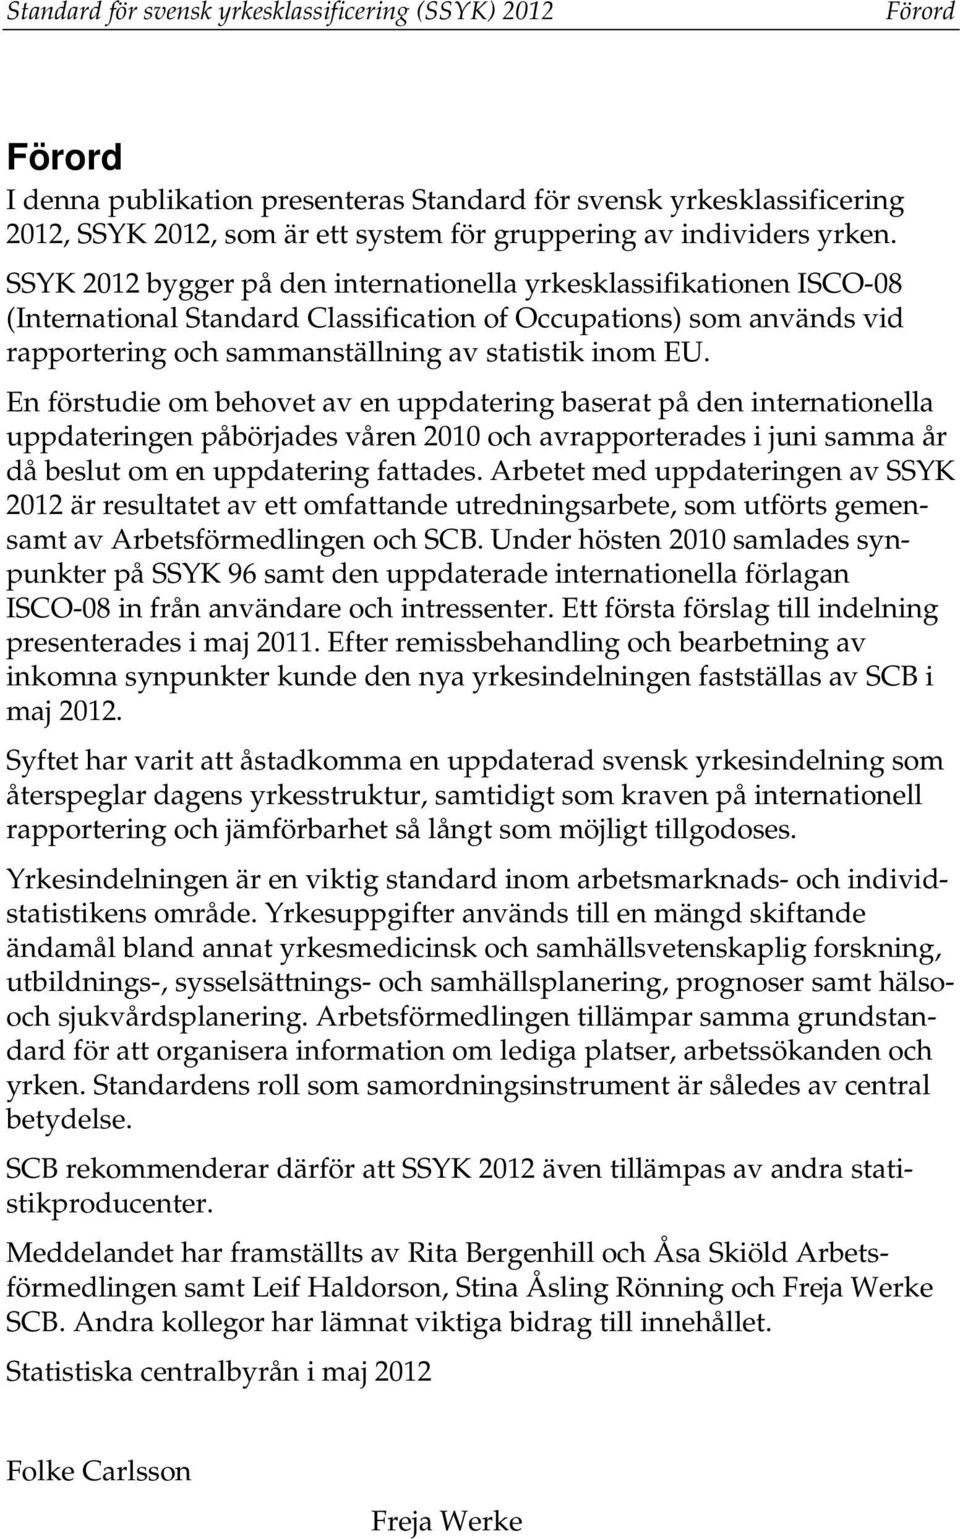 SSYK 2012 bygger på den internationella yrkesklassifikationen ISCO-08 (International Standard Classification of Occupations) som används vid rapportering och sammanställning av statistik inom EU.